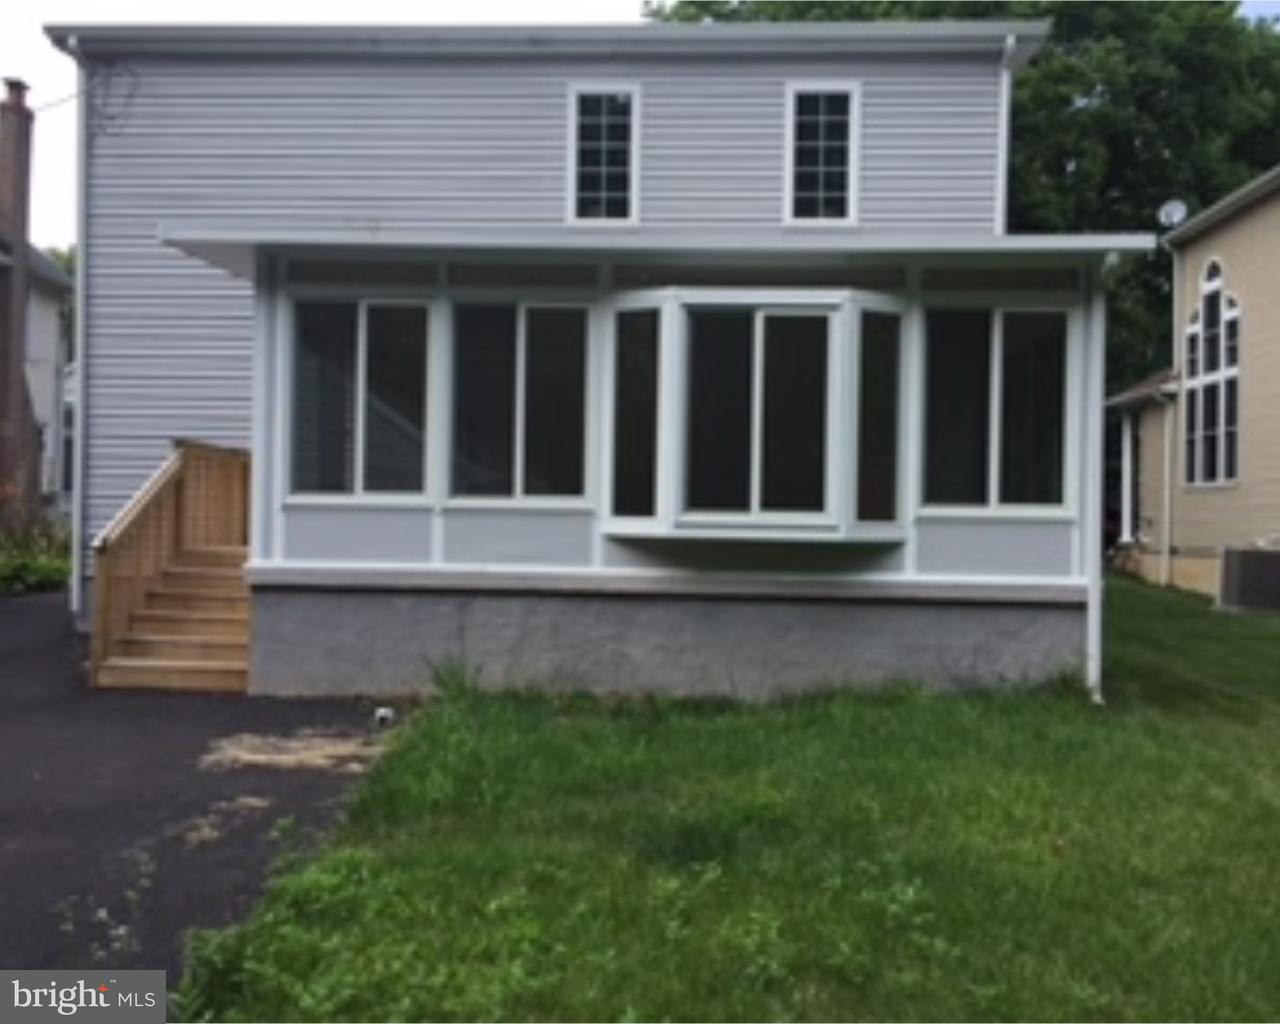 236 BOWDOIN AVE, SWARTHMORE - Listed at $495,900, SWARTHMORE